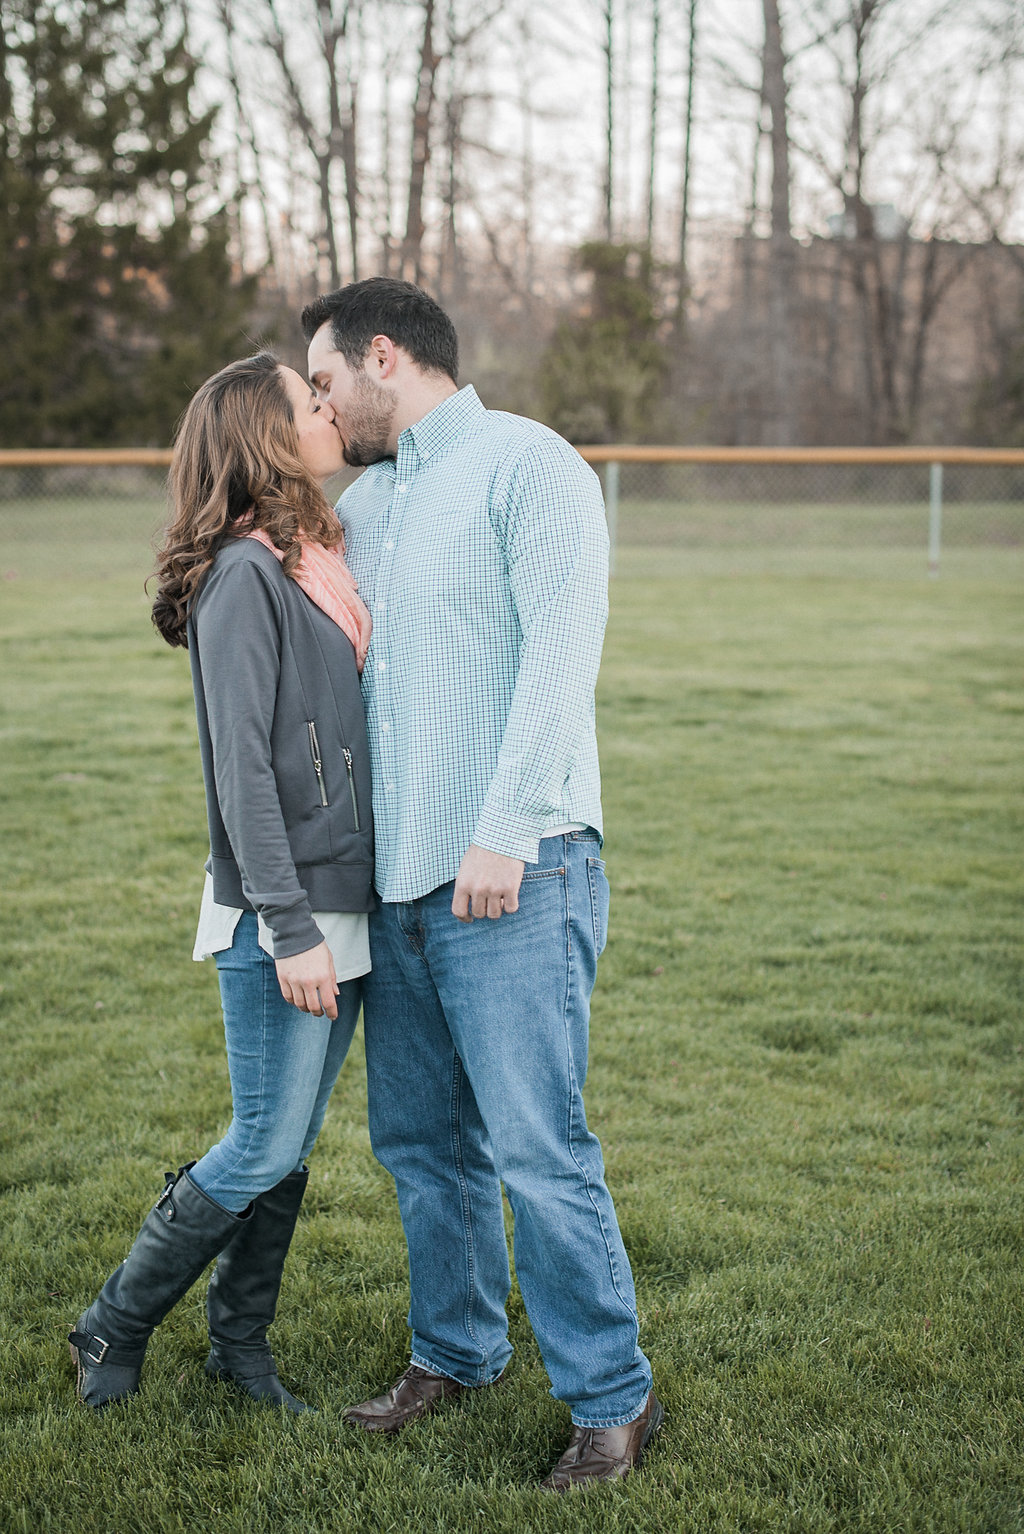 Couple kissing on baseball field